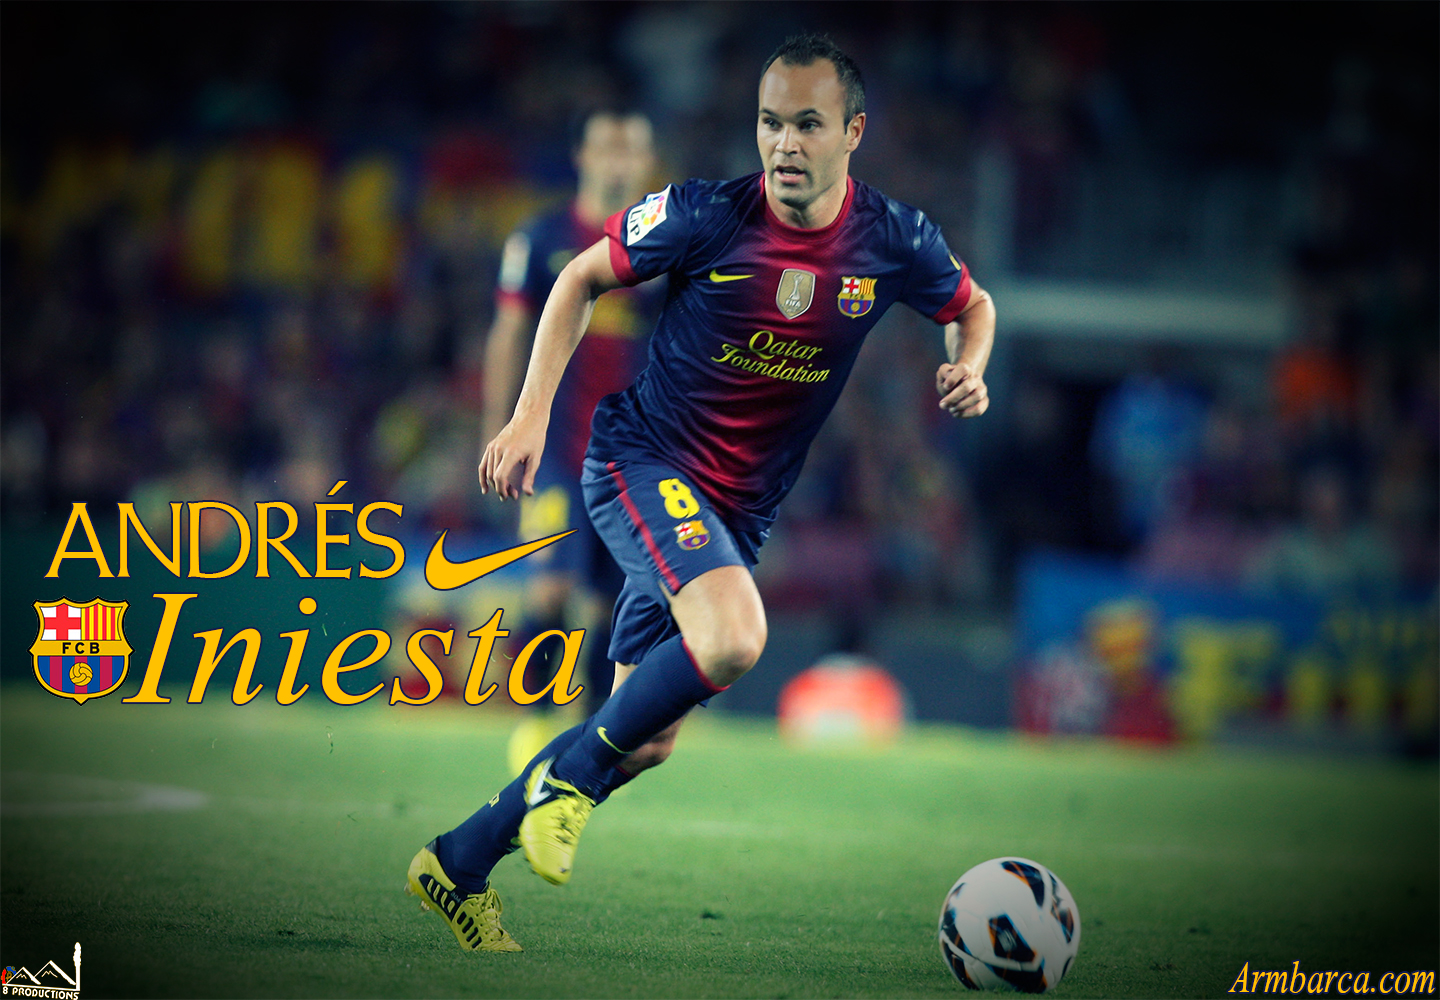 Andres Iniesta 2013 Wallpapers HD 1440x1000